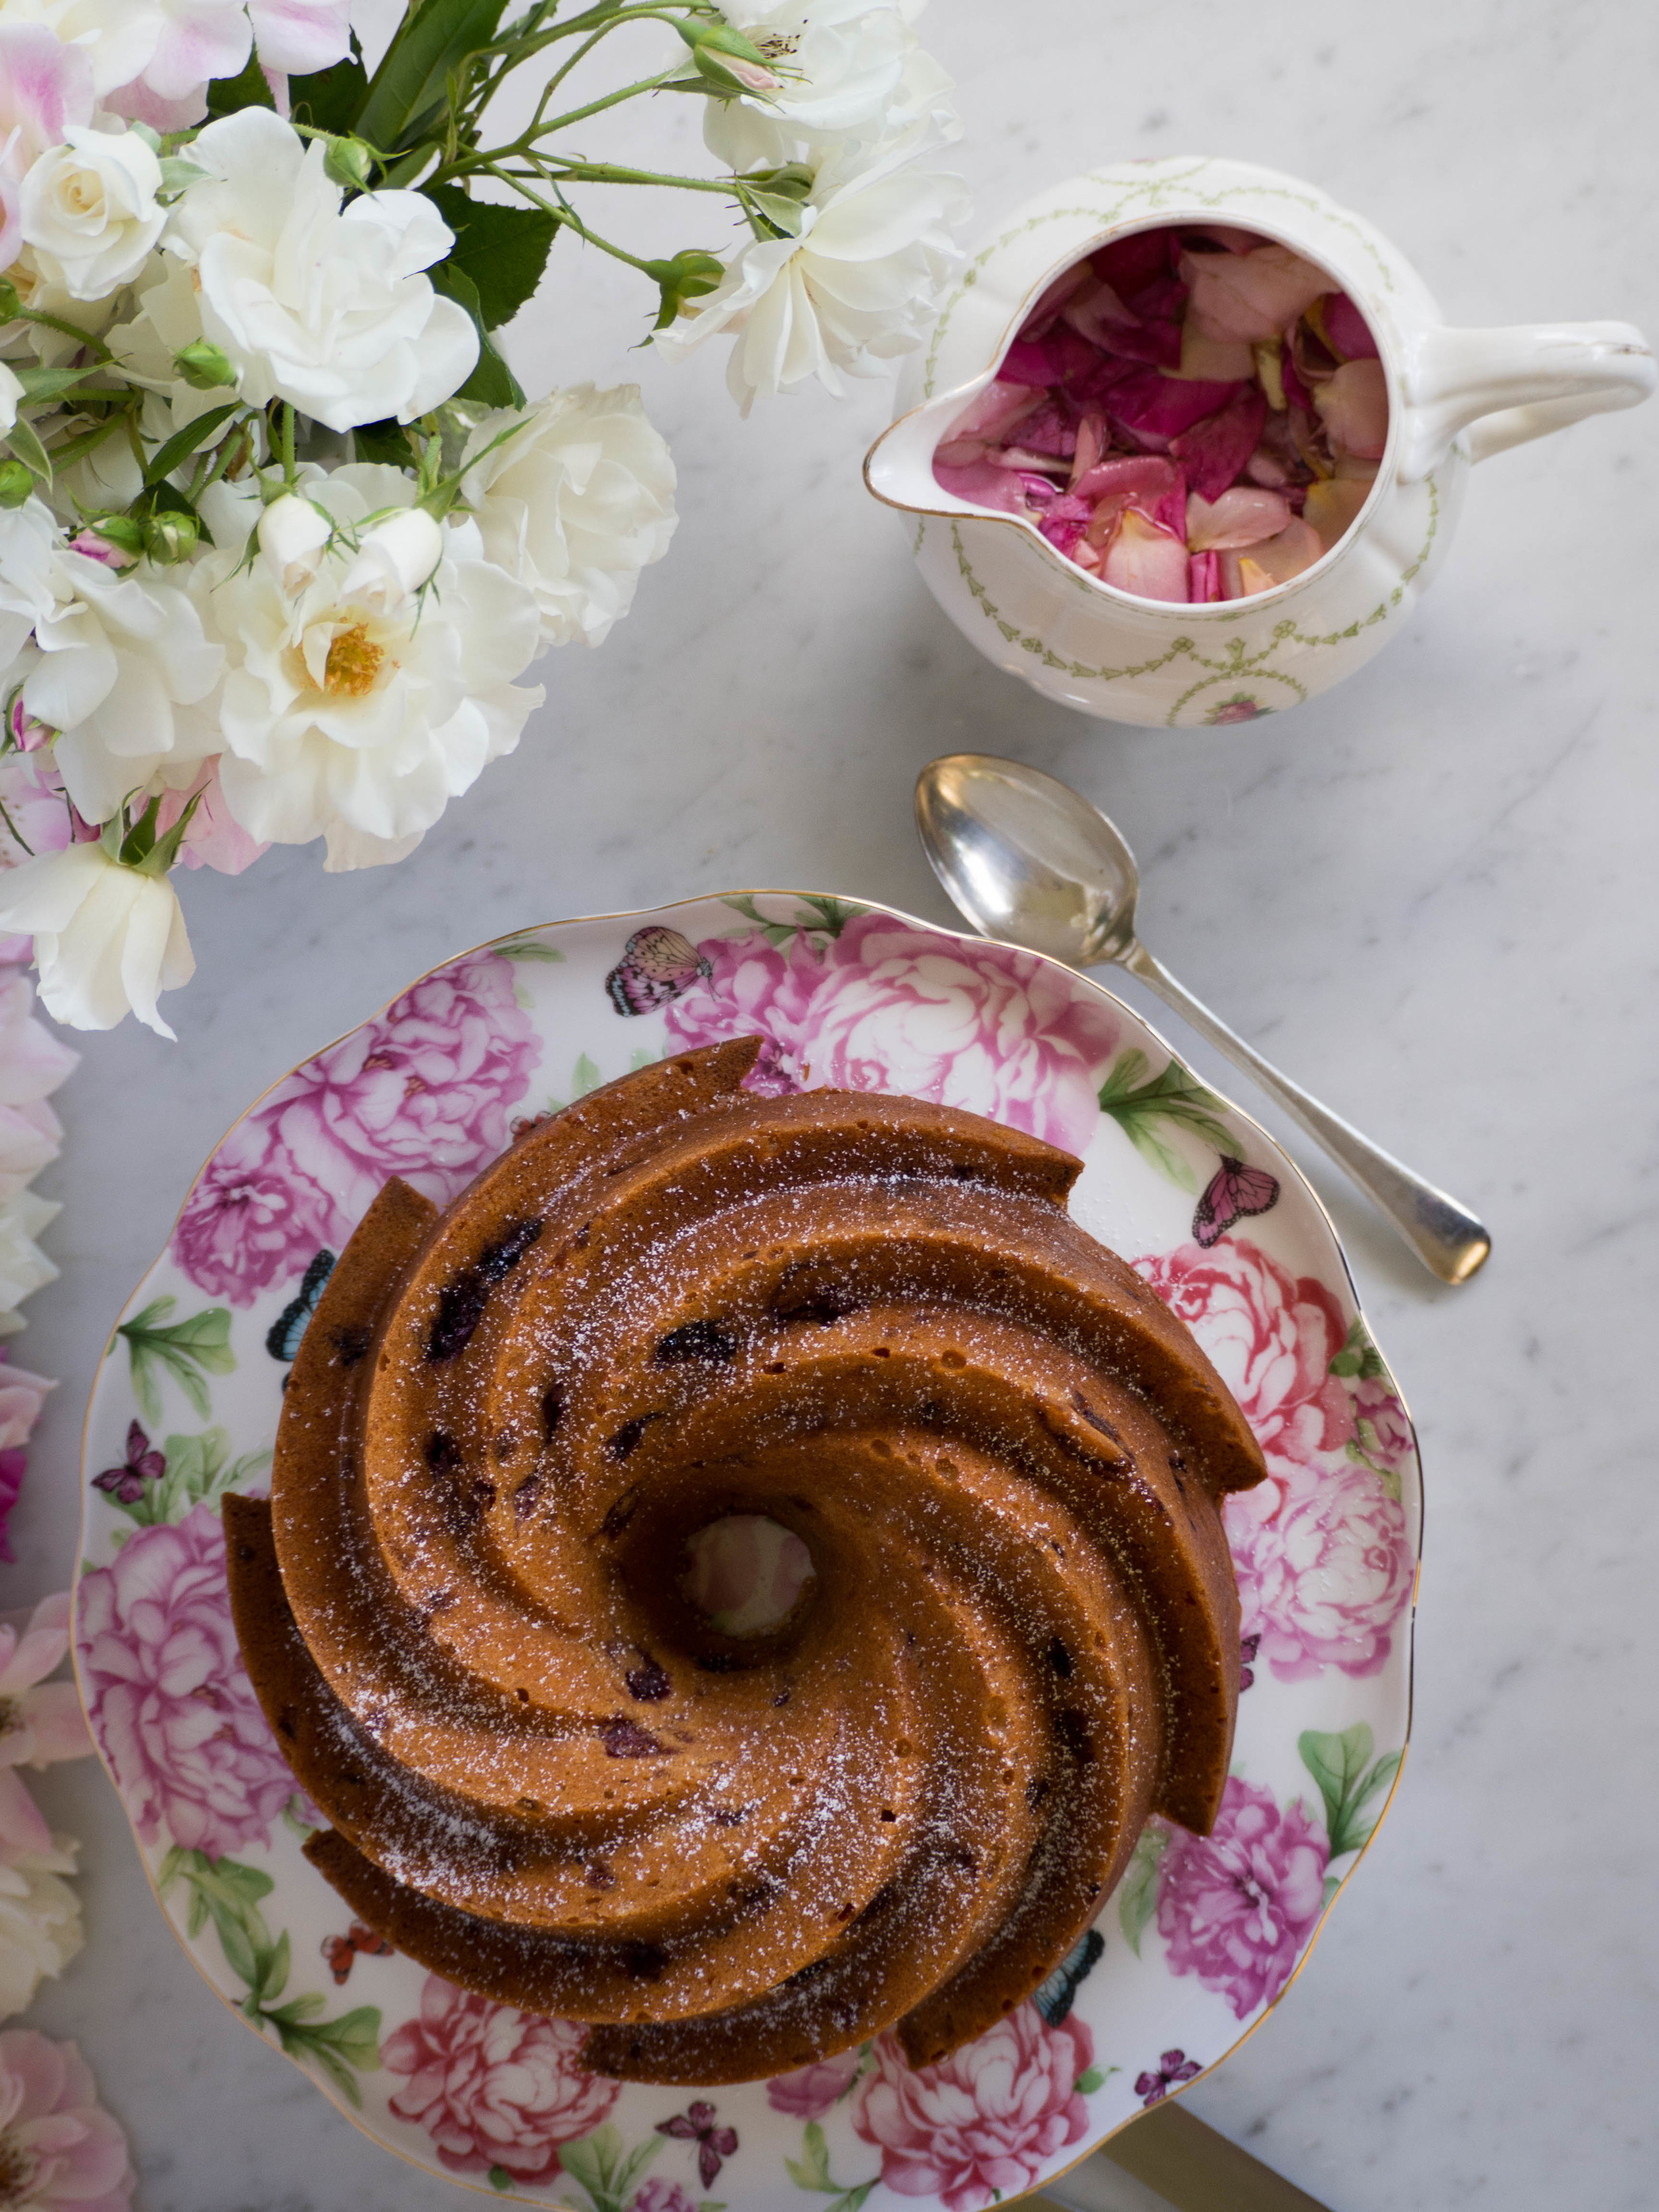 Raspberry Bundt Cake with Rose Syrup - Kulinary Adventures of Kath